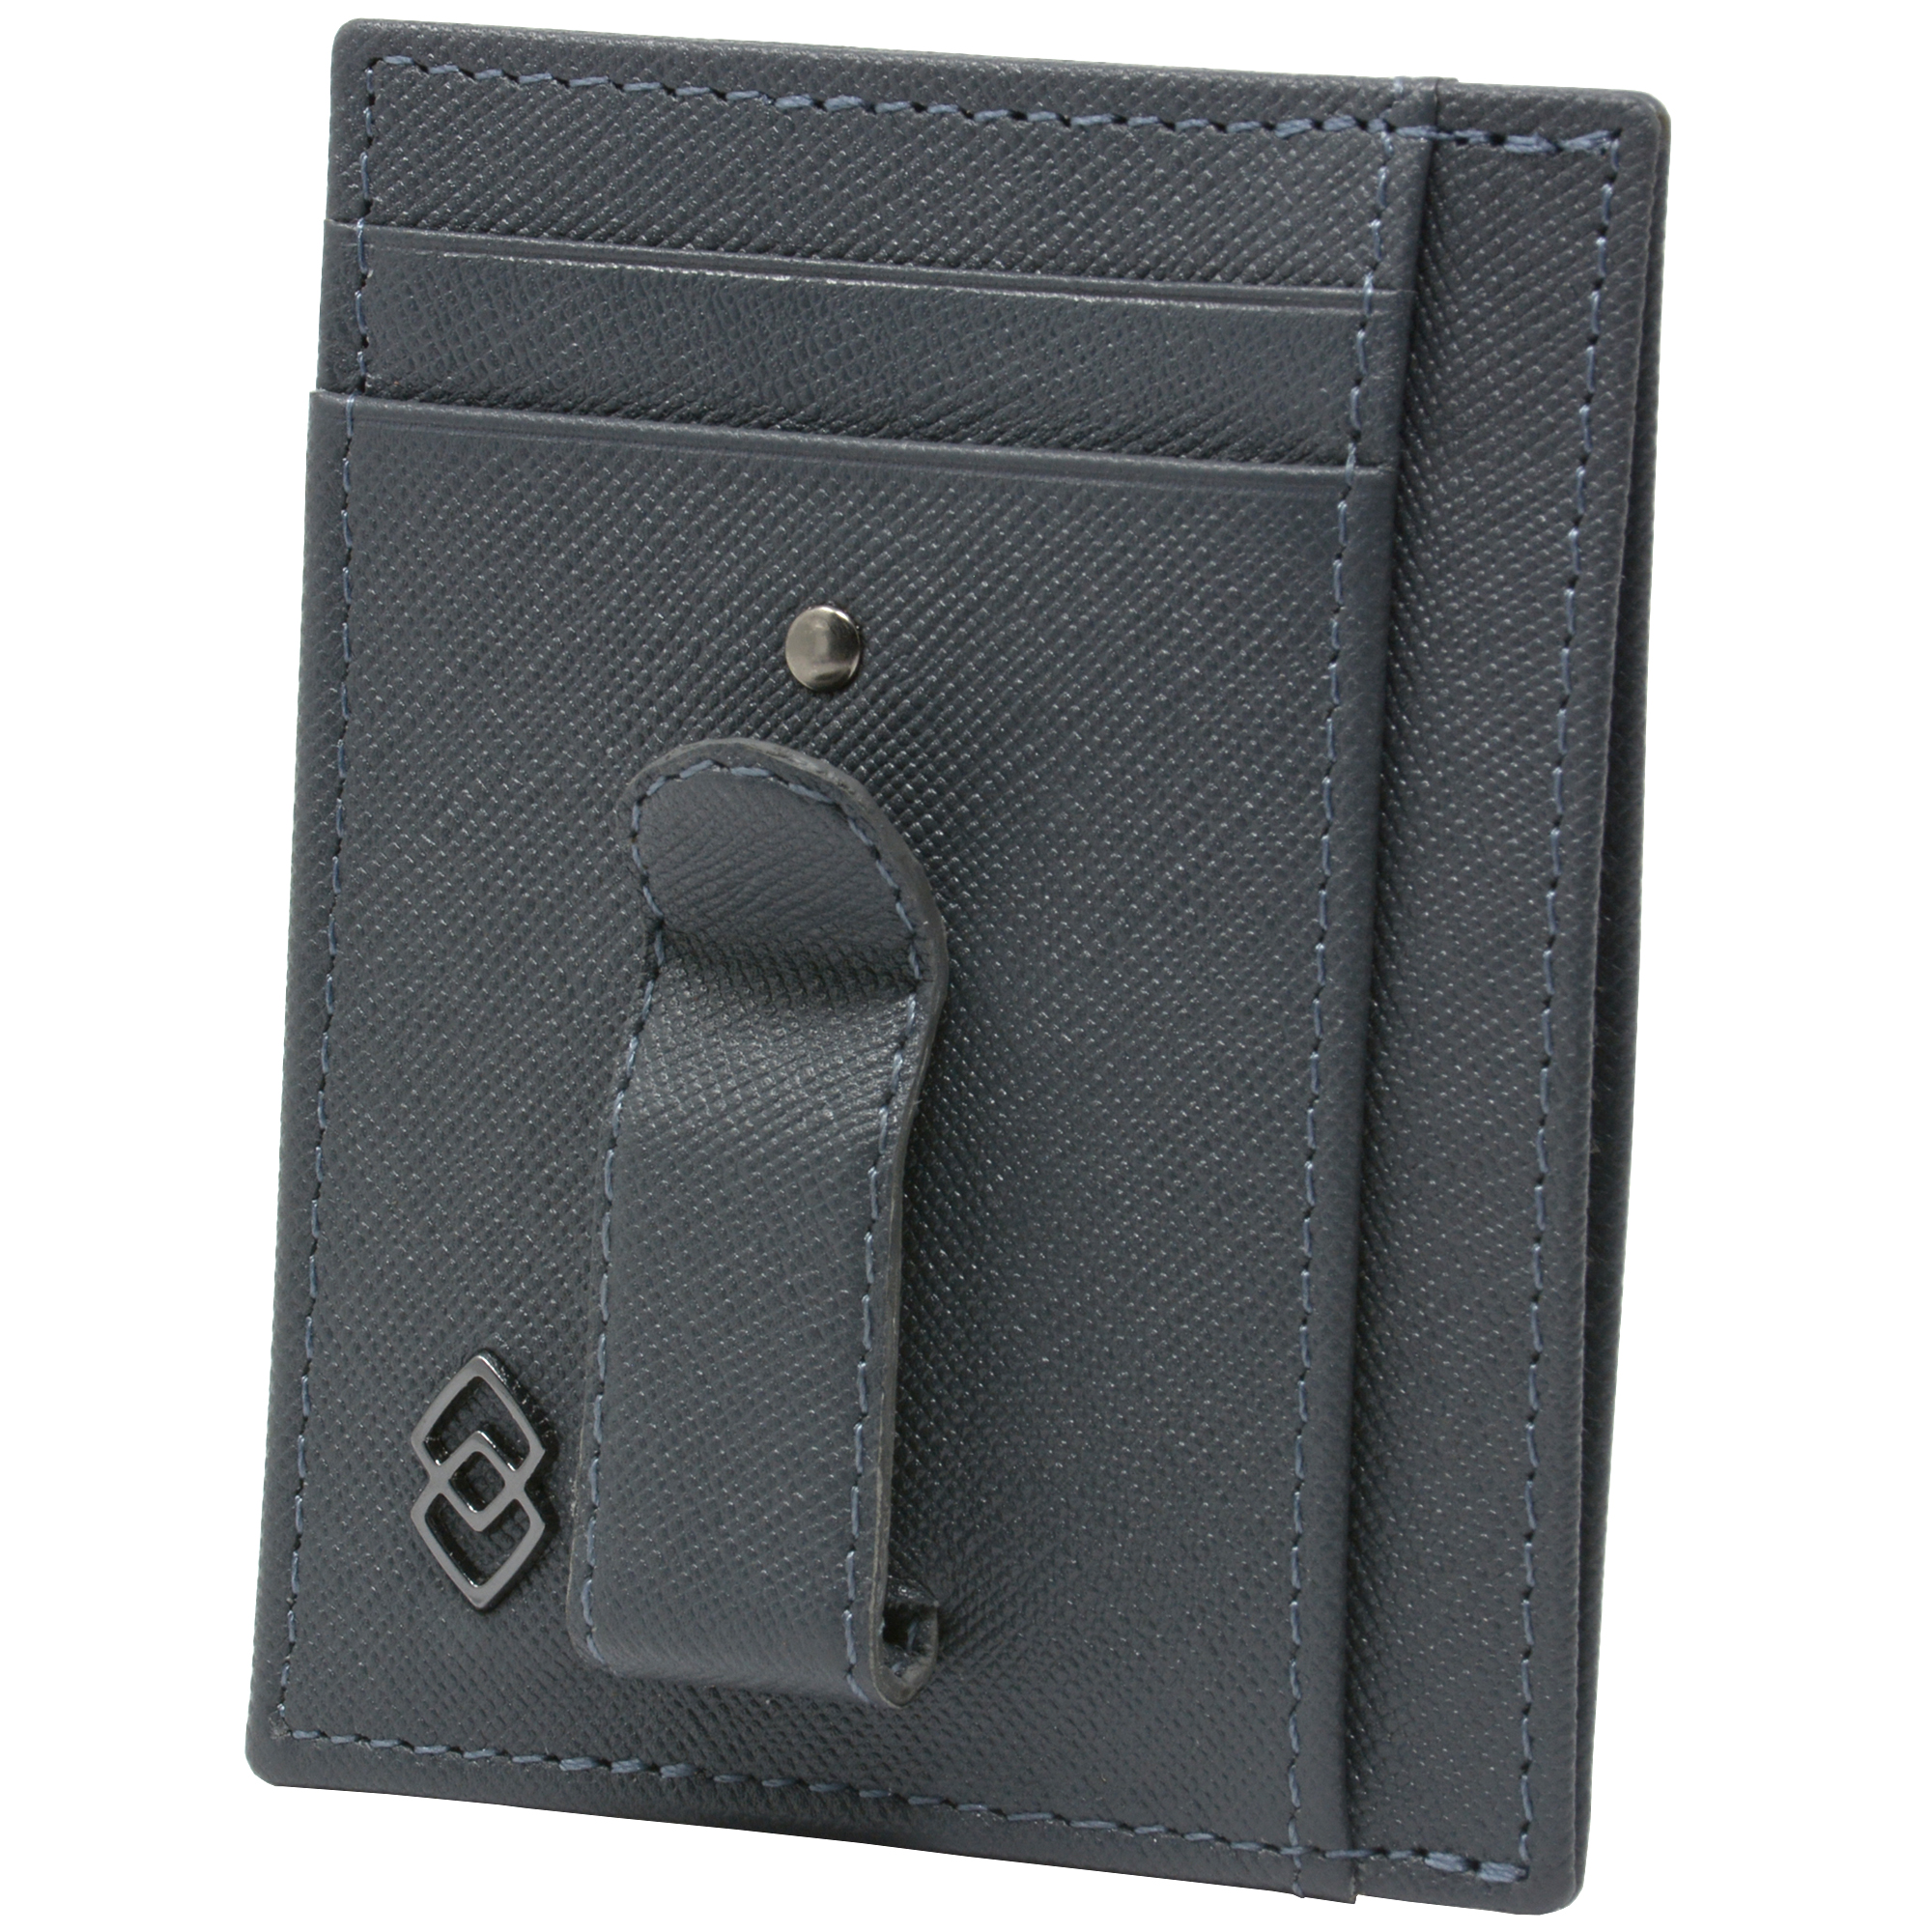 Alpine-Swiss-Double-Diamond-Men-s-RFID-Money-Clip-Minimalist-Front-Pocket-Wallet